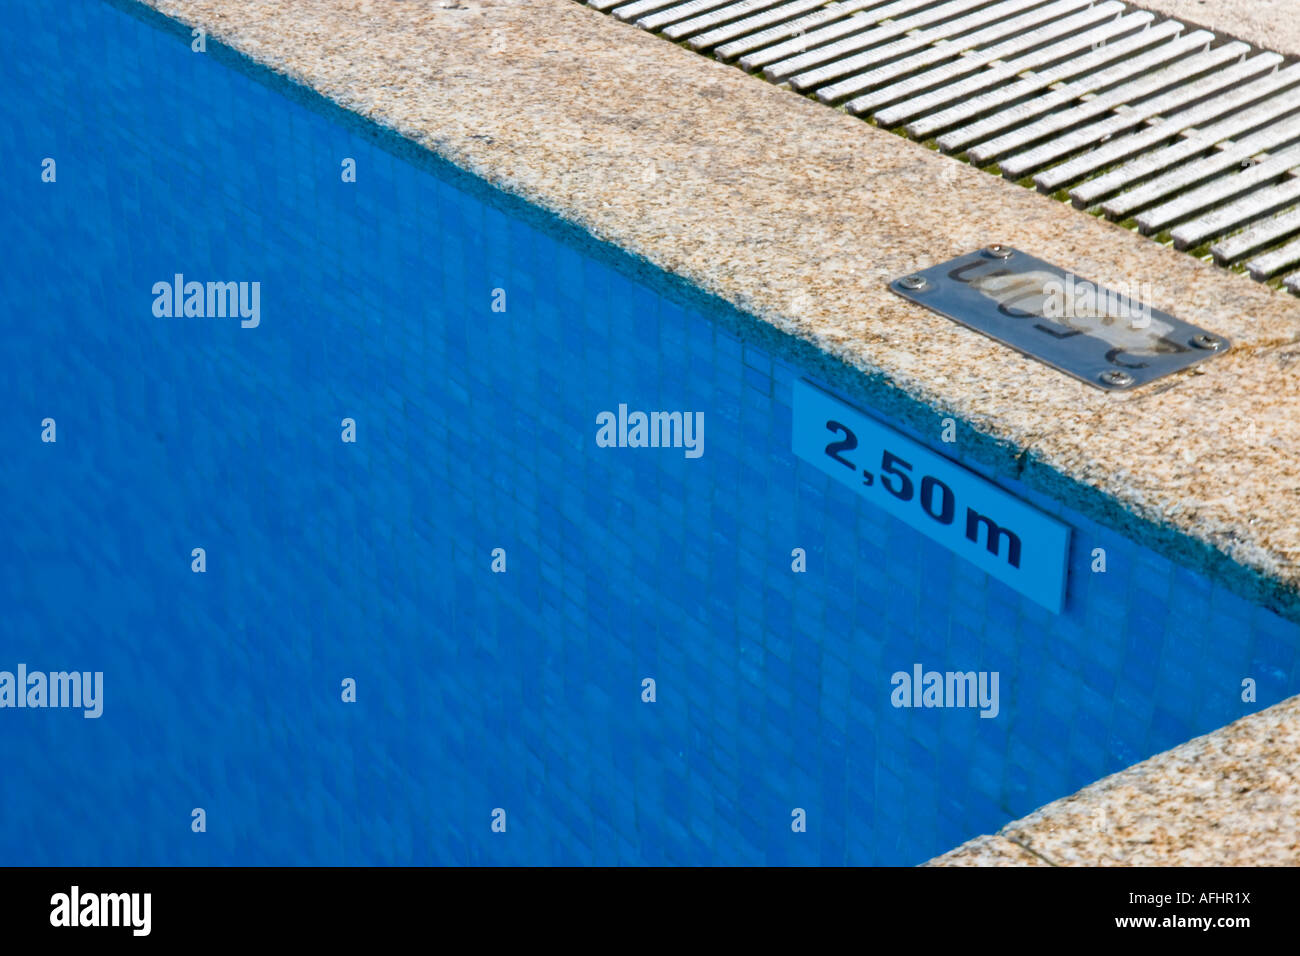 swimming pool 2 50 meter depth sign stock photo 13953541 alamy. Black Bedroom Furniture Sets. Home Design Ideas